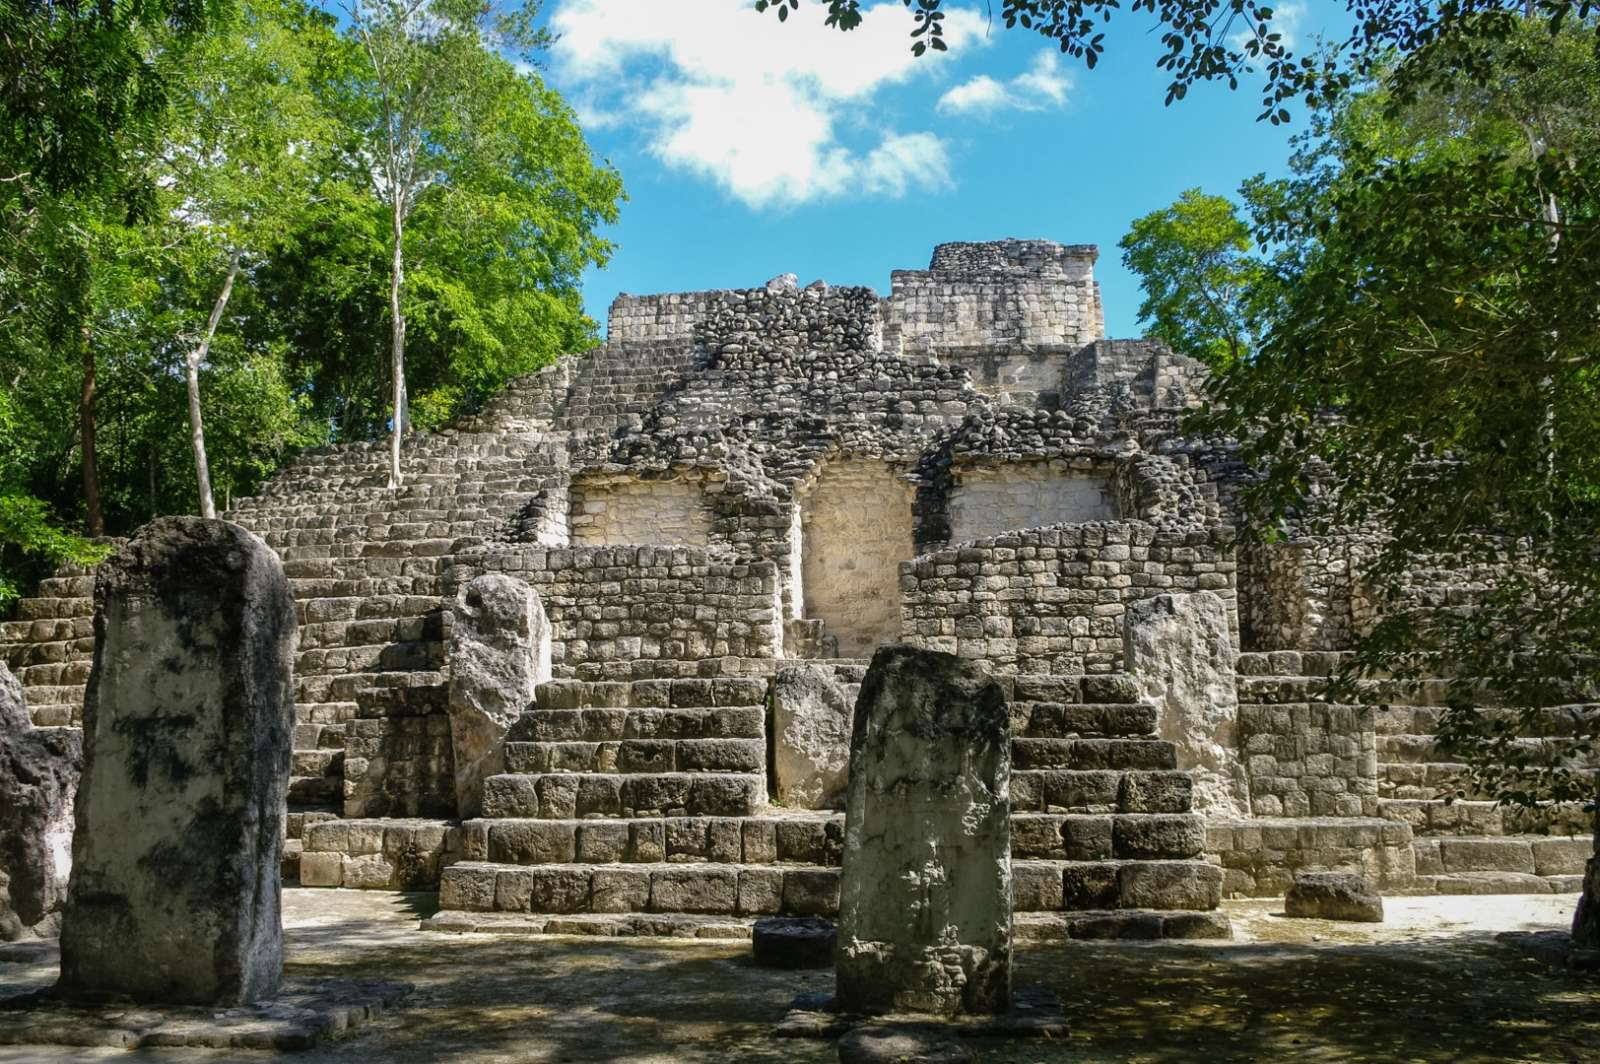 Steps and stelae at Calakmul in Mexico